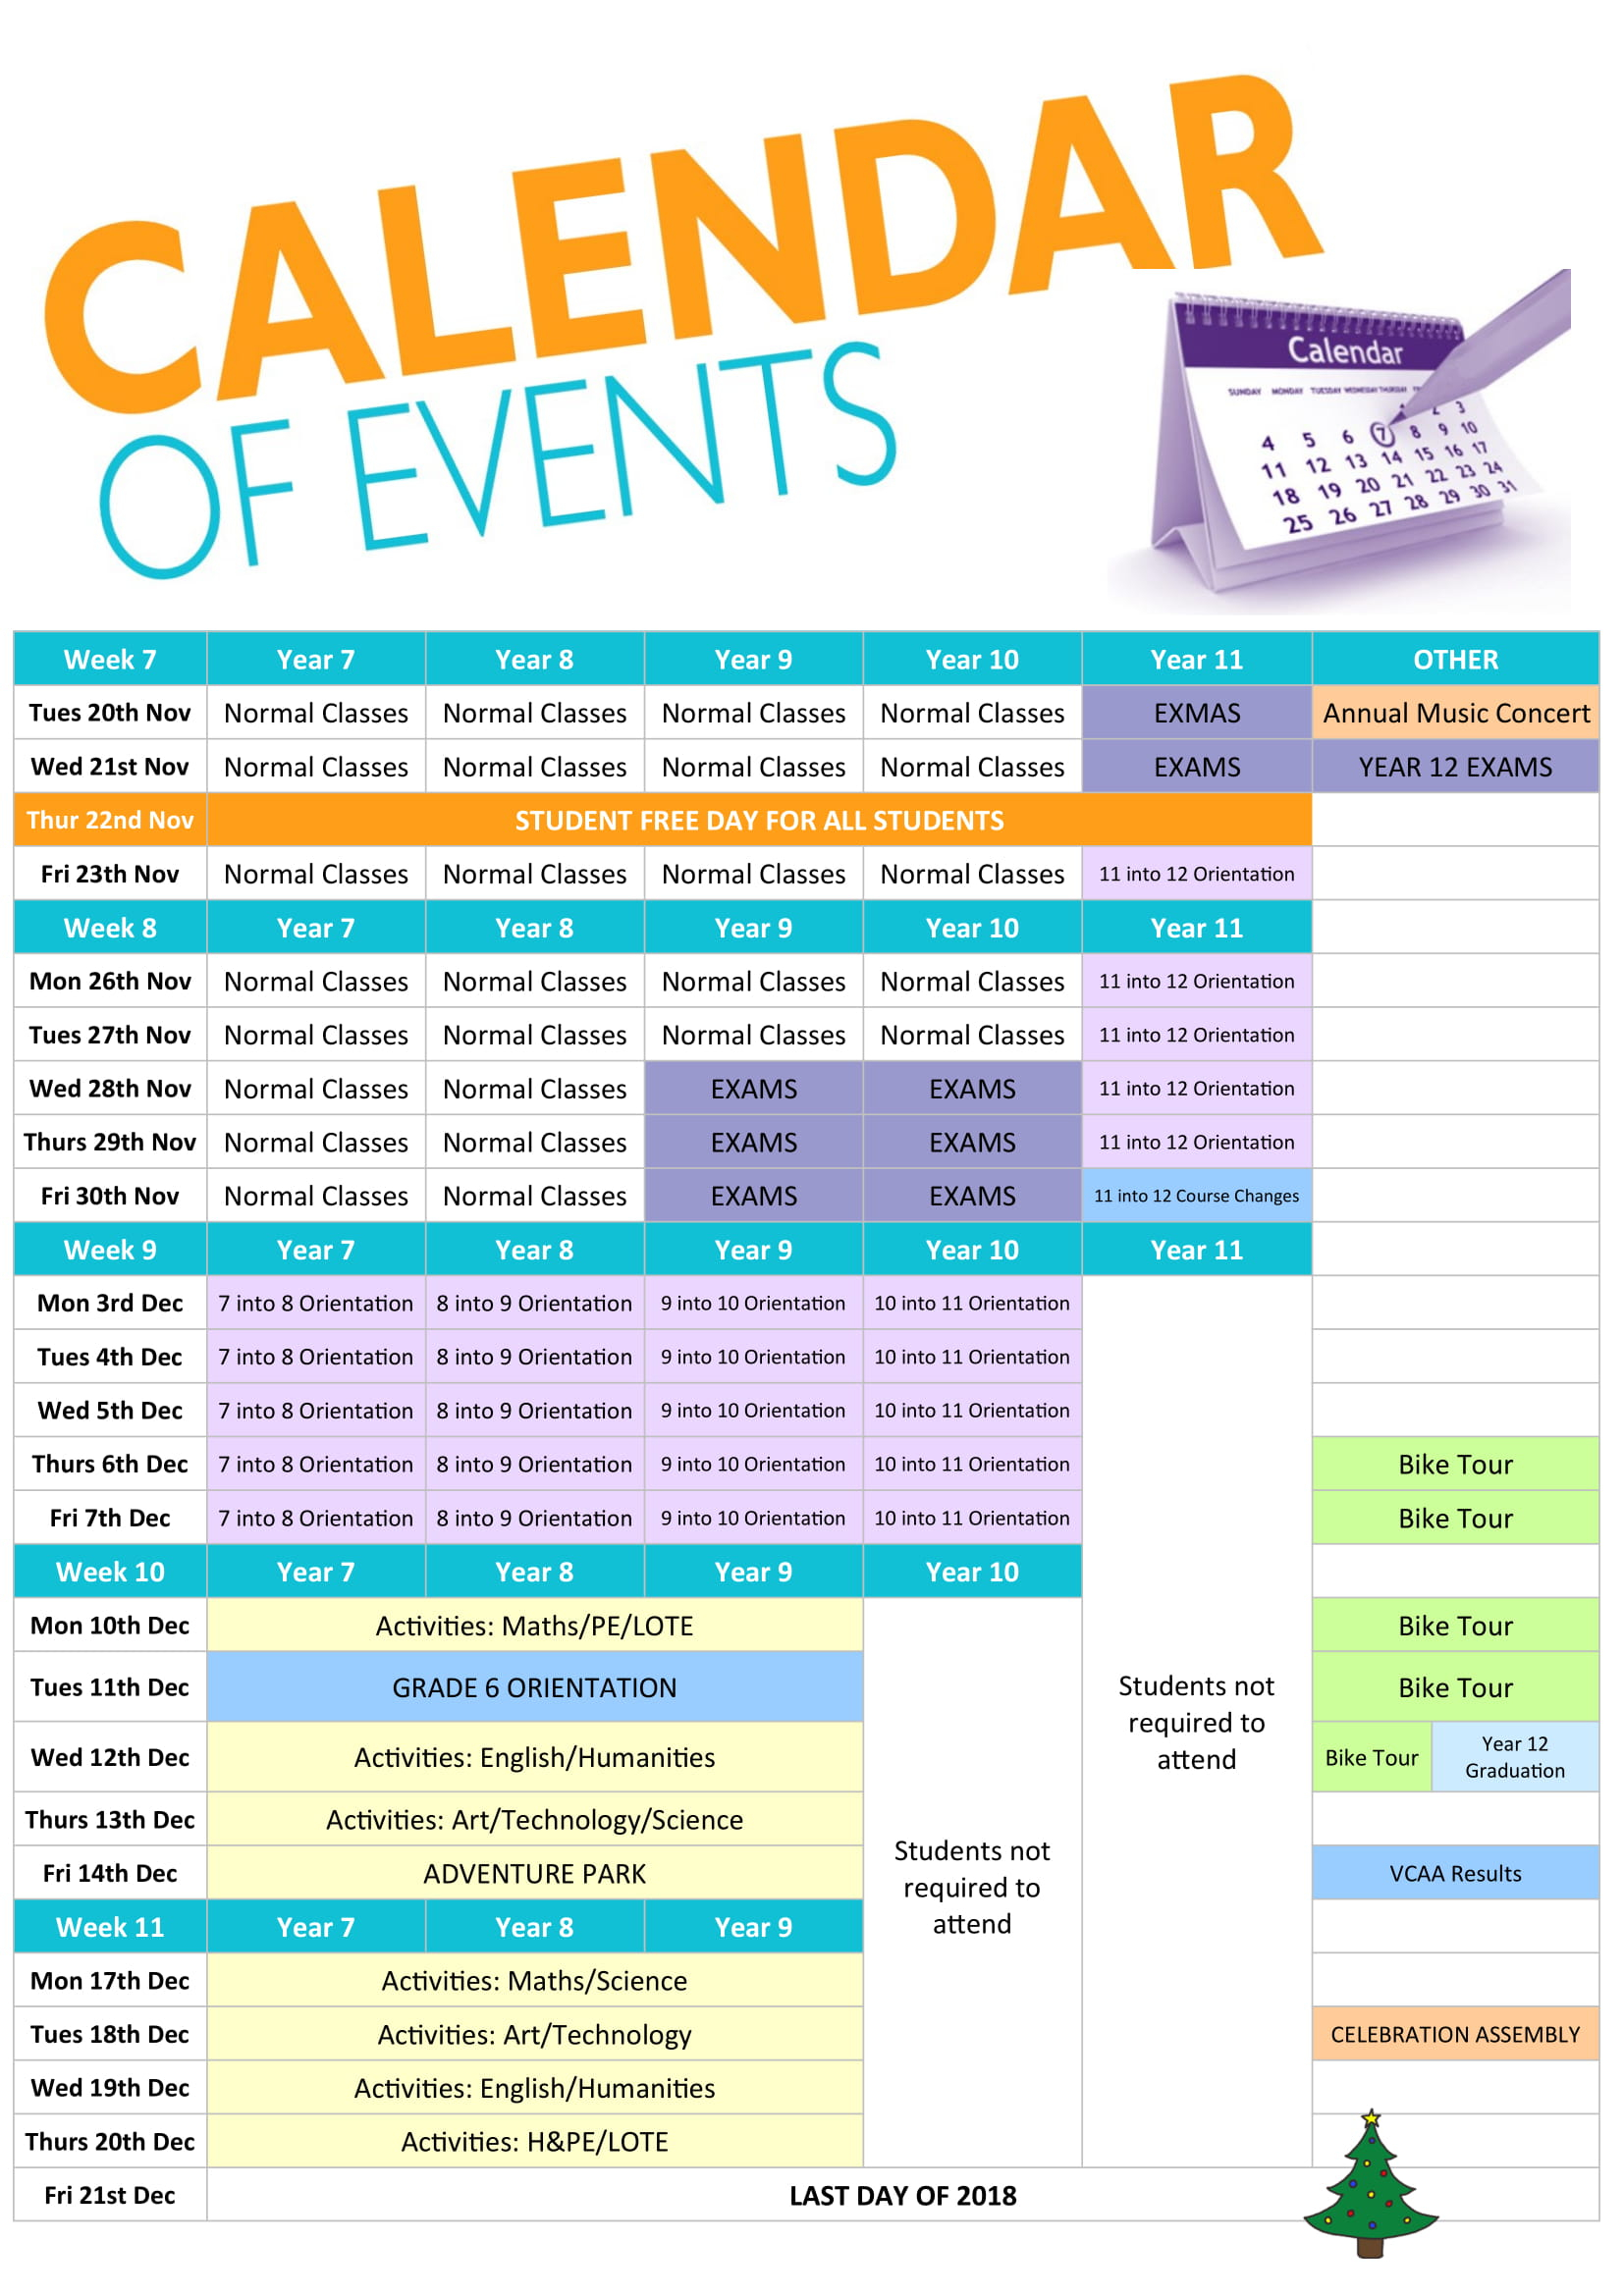 School Events Calendar Regarding Cash 3 Midday Yearly Calendar